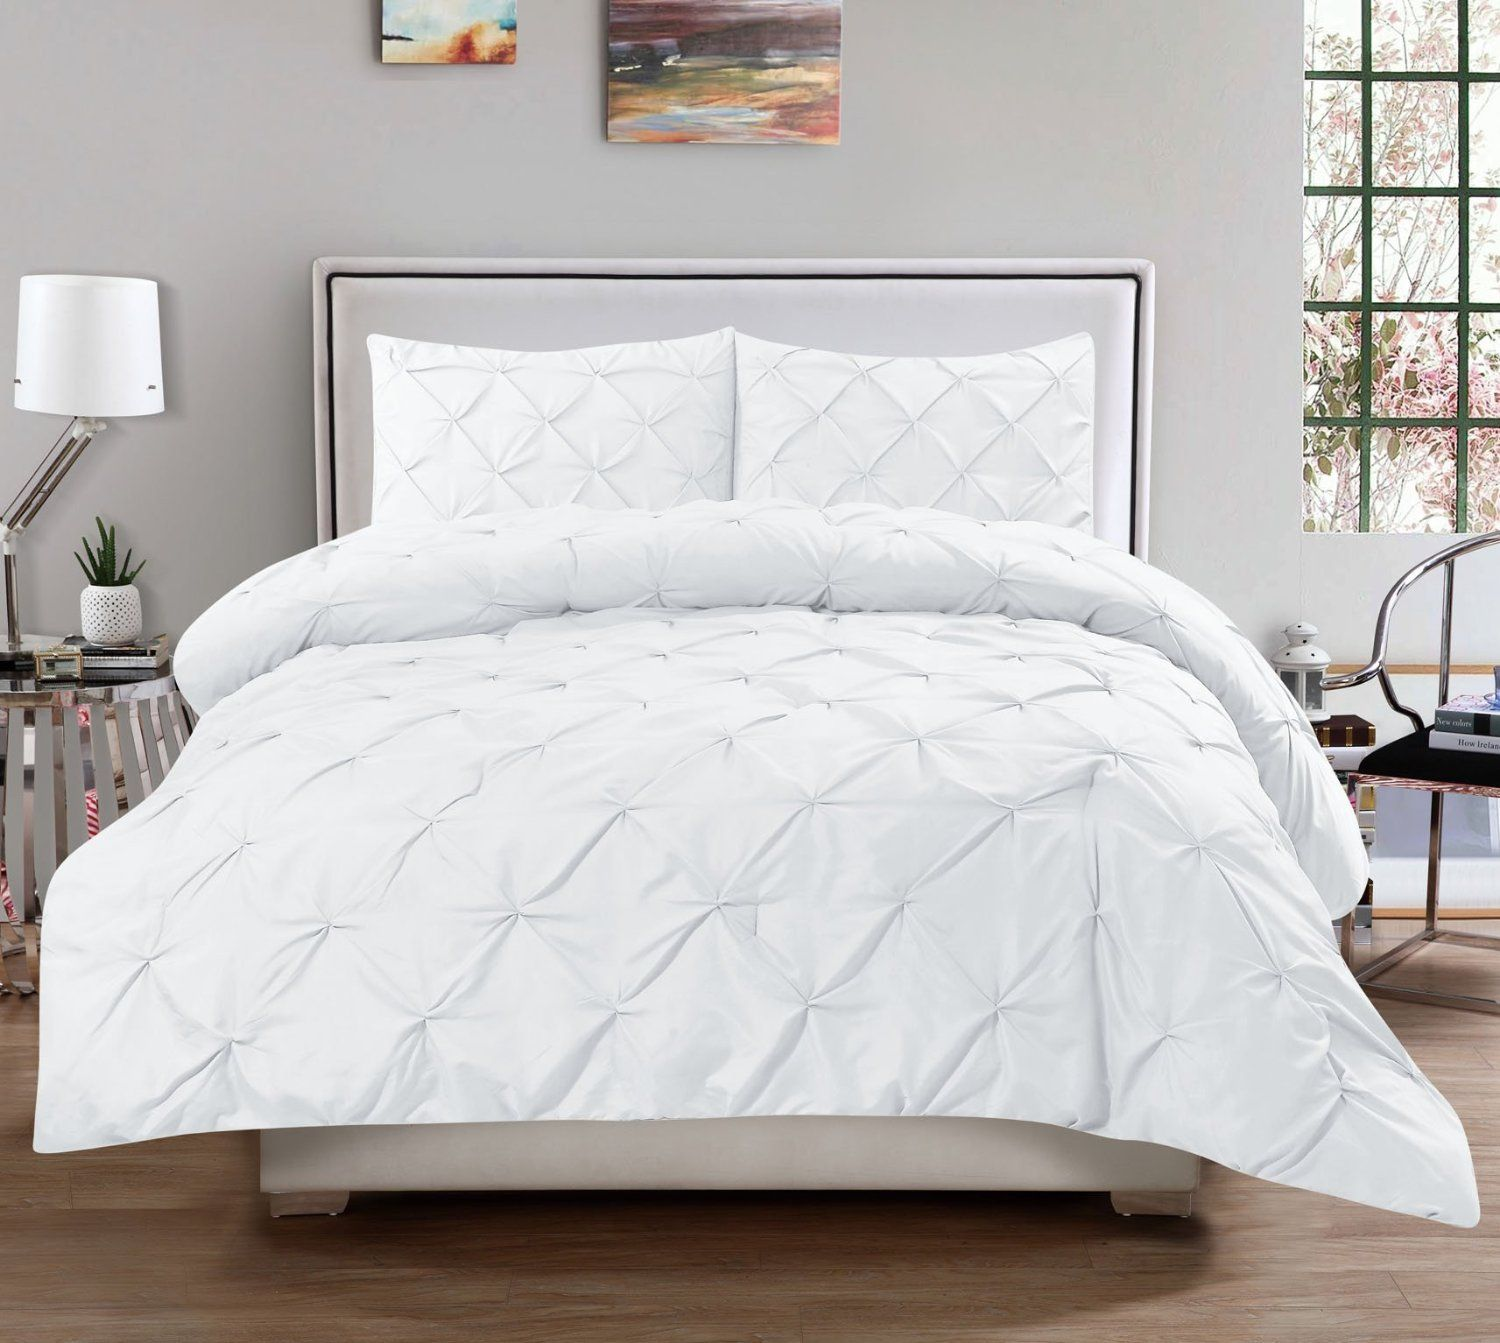 home shipping today comforter puredown bedding overstock james bath lightweight goose free down st product white